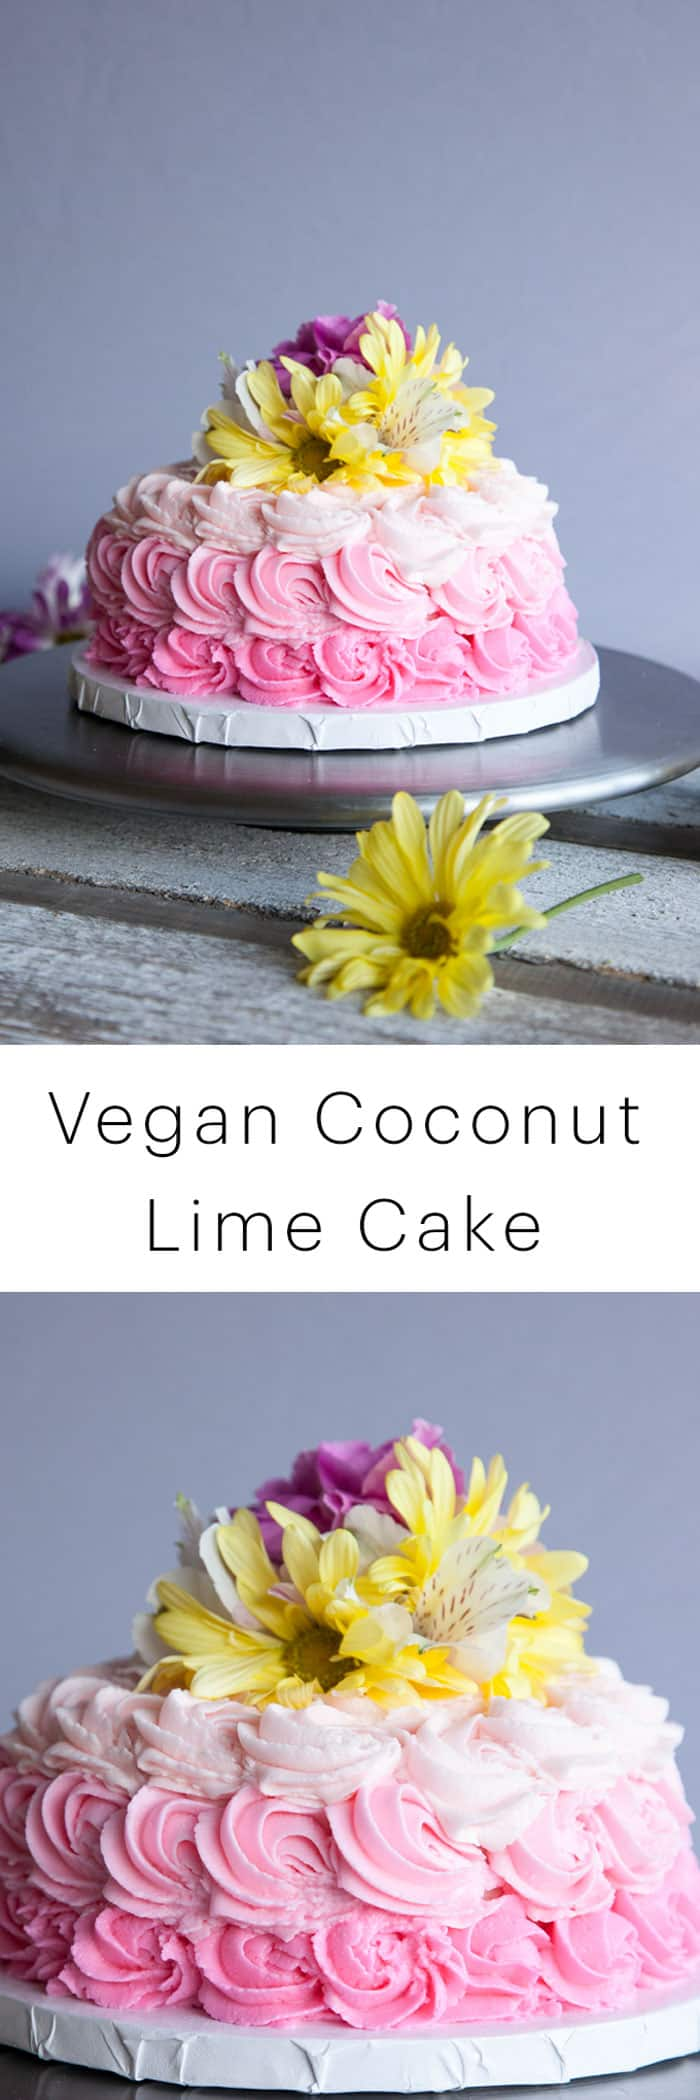 Vegan Dessert Recipe: Decadent Coconut Lime Cake Collab with The Icing Artist